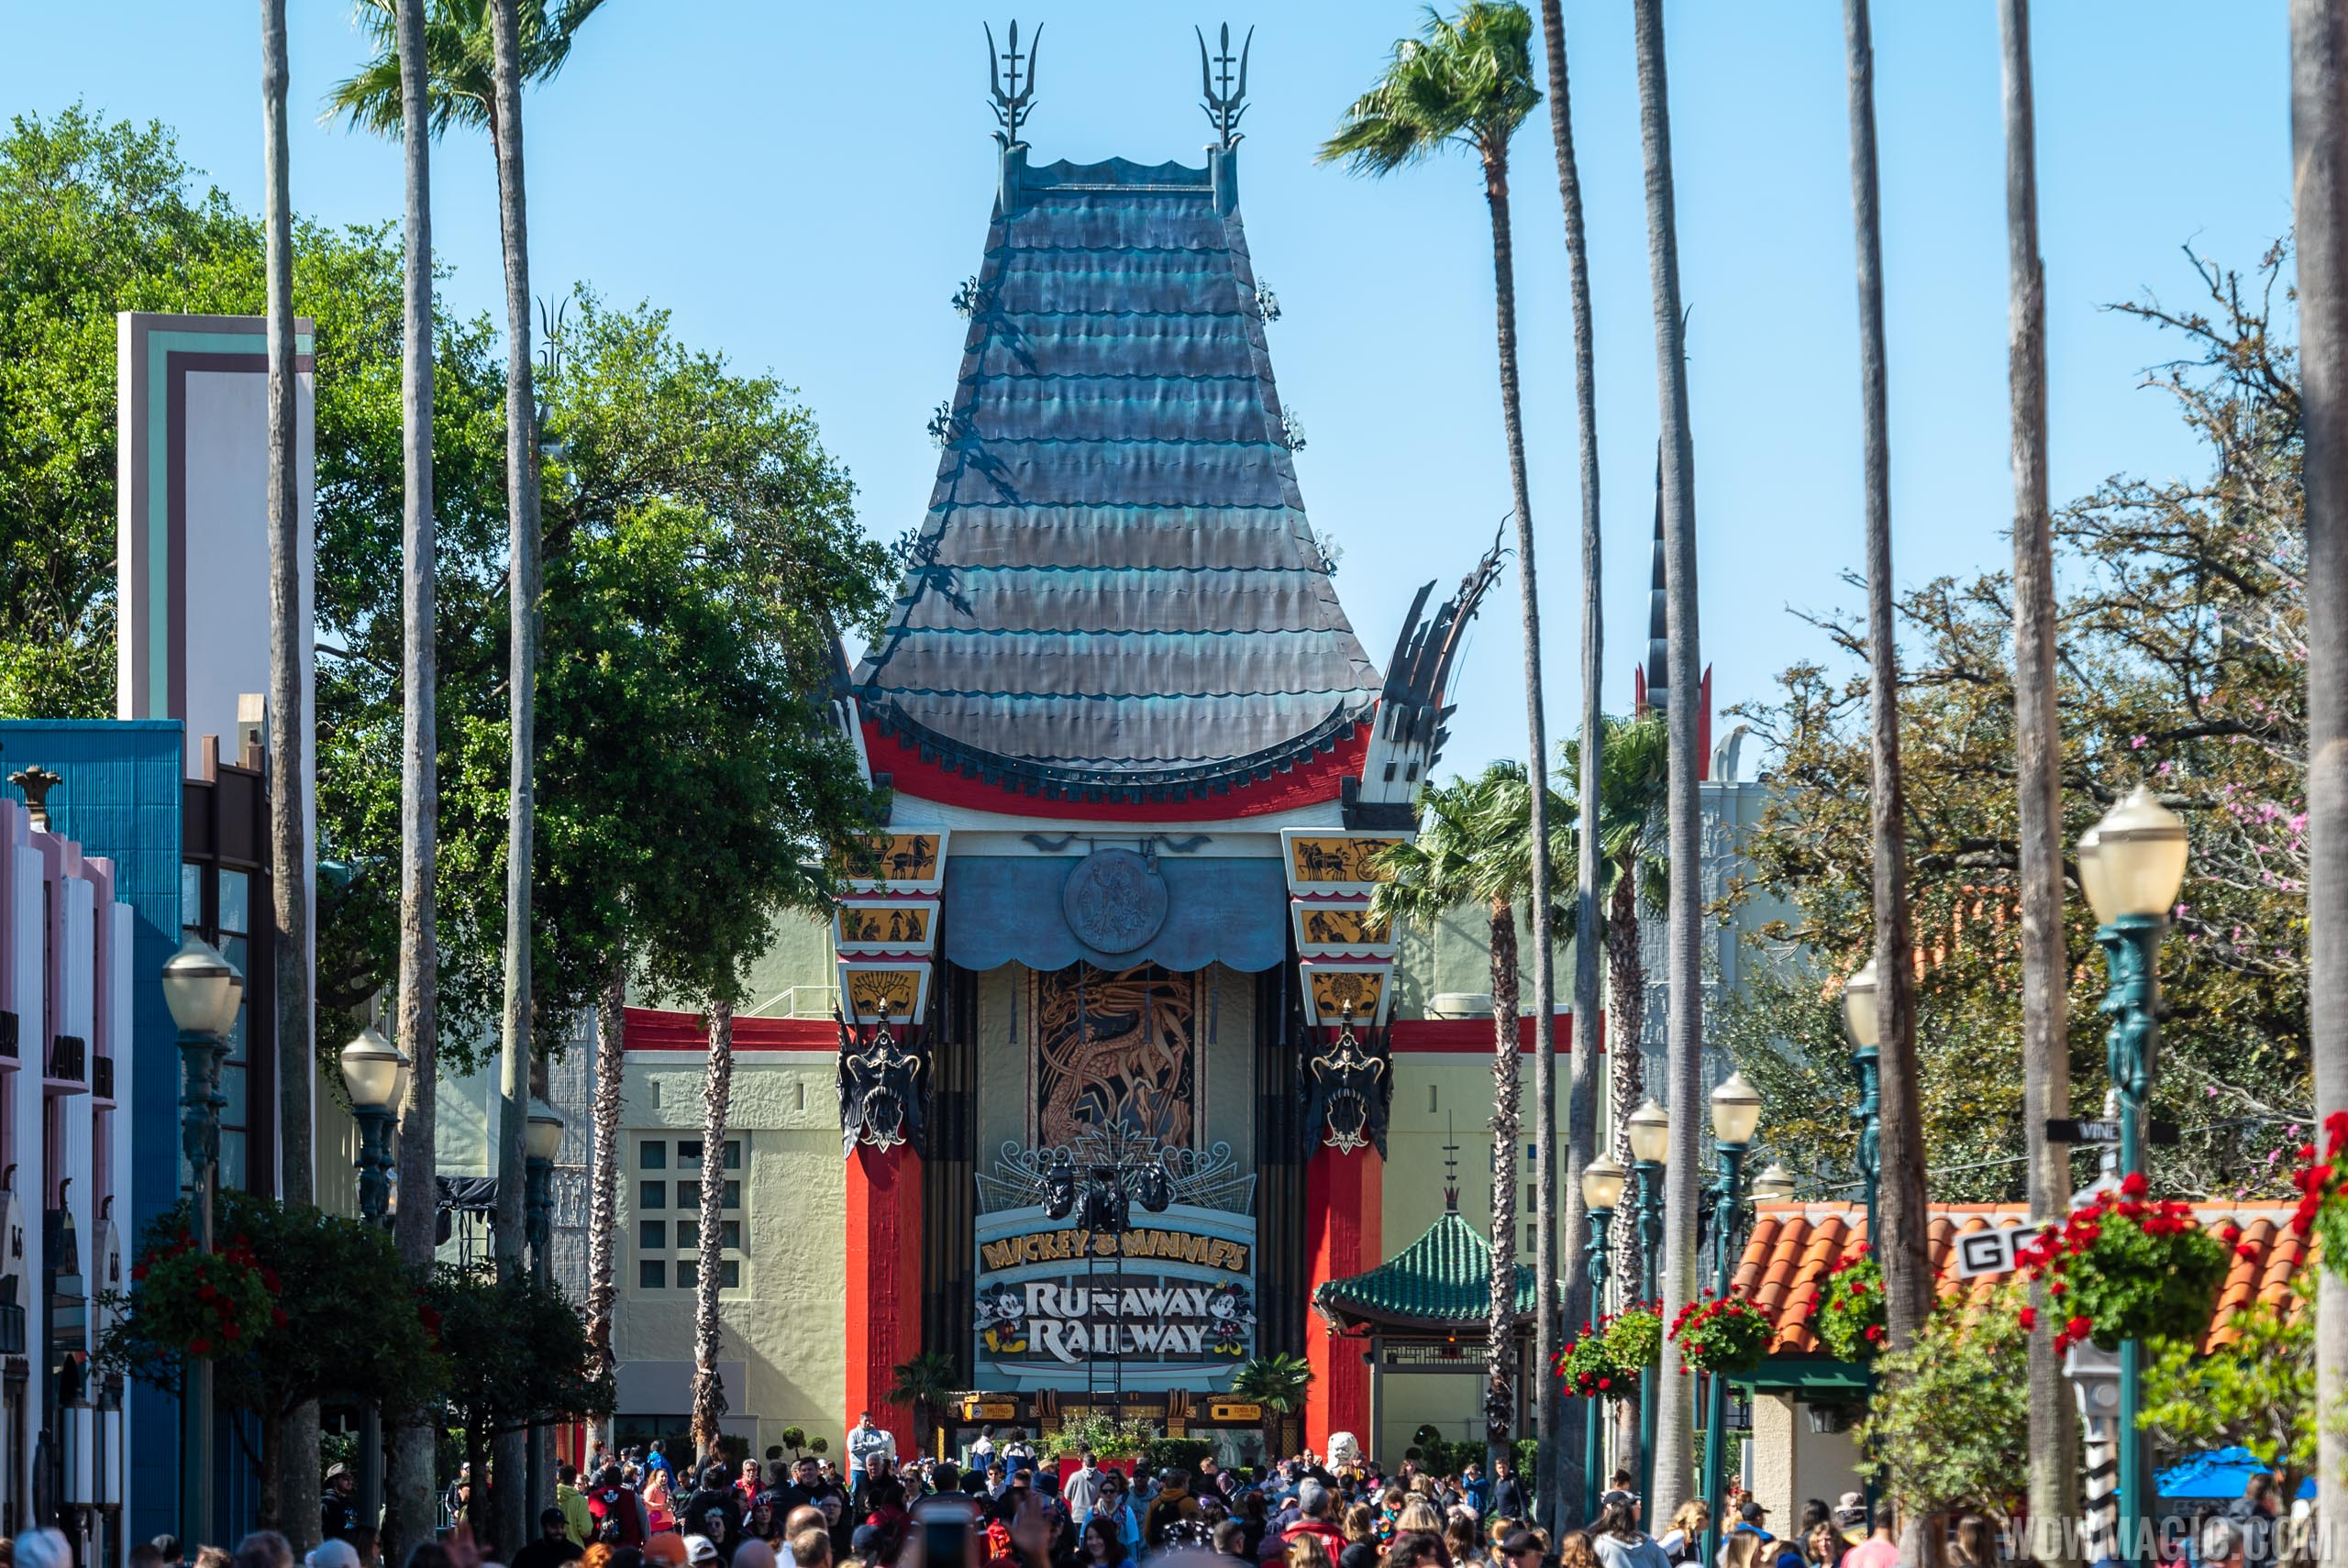 The Chinese Theater is home to Runaway Railway and the Star Wars nighttime show